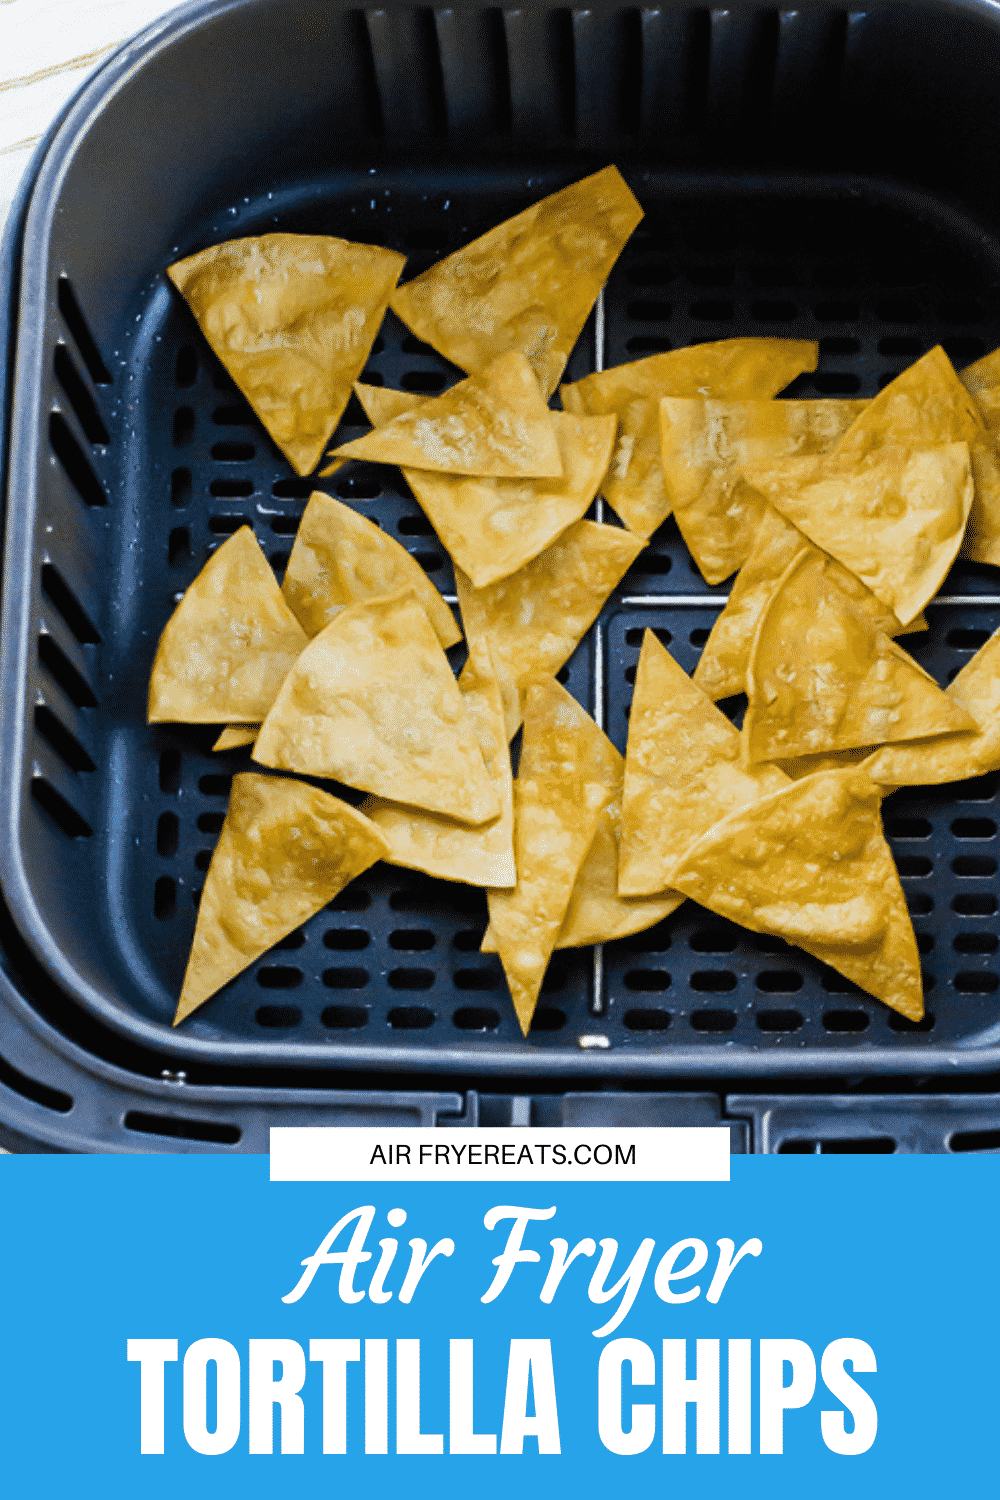 You need this simple recipe for tortilla chips in the air fryer. You won't believe how easy it is to make fresh corn tortilla chips at home without deep frying! #airfryer #gamedayfood via @vegetarianmamma